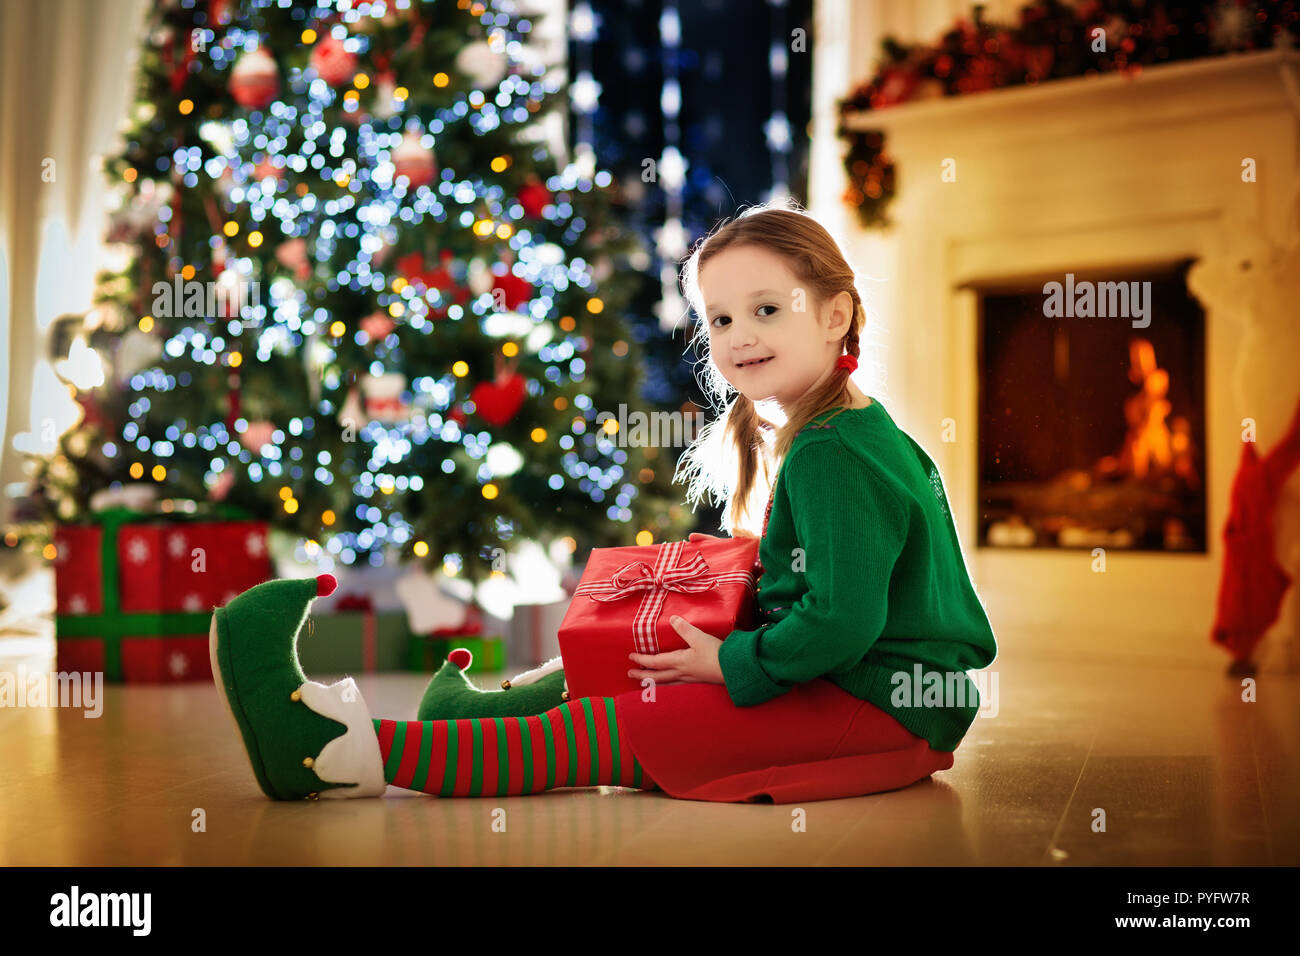 Child opening present at Christmas tree at home. Kid in elf costume ...